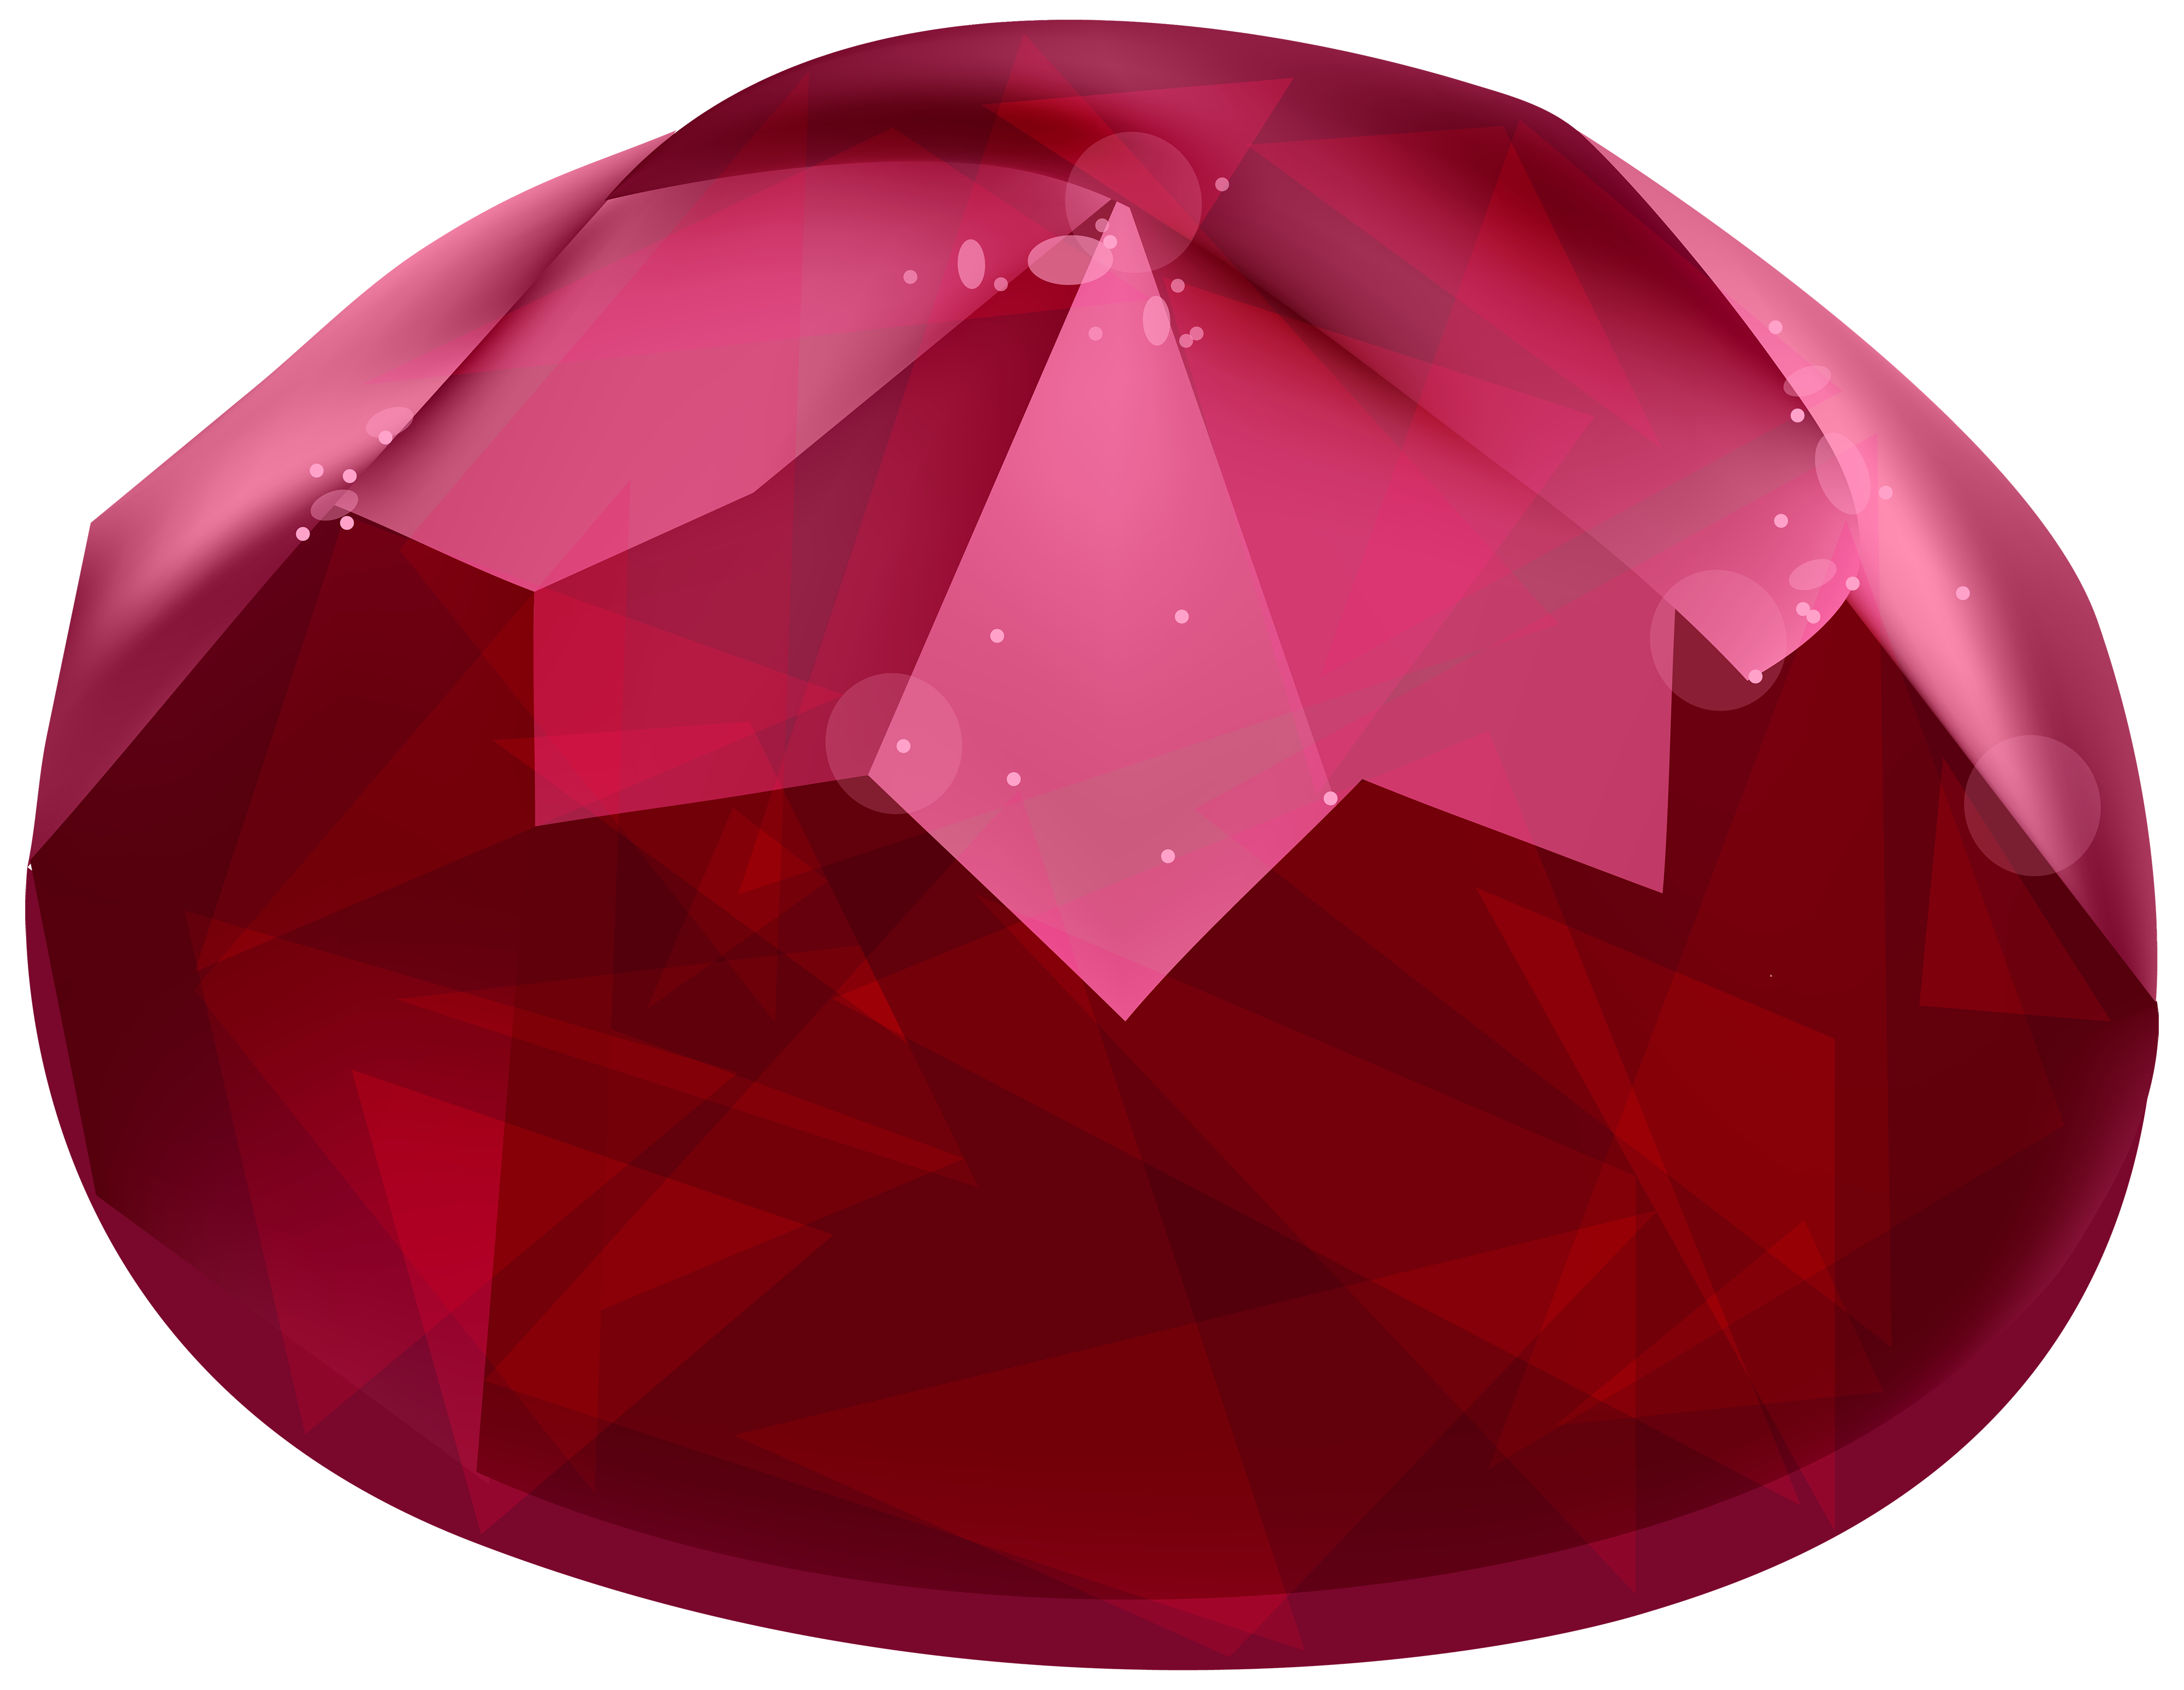 Clipart gem image royalty free download Red Diamond Gem PNG Clipart - Best WEB Clipart image royalty free download